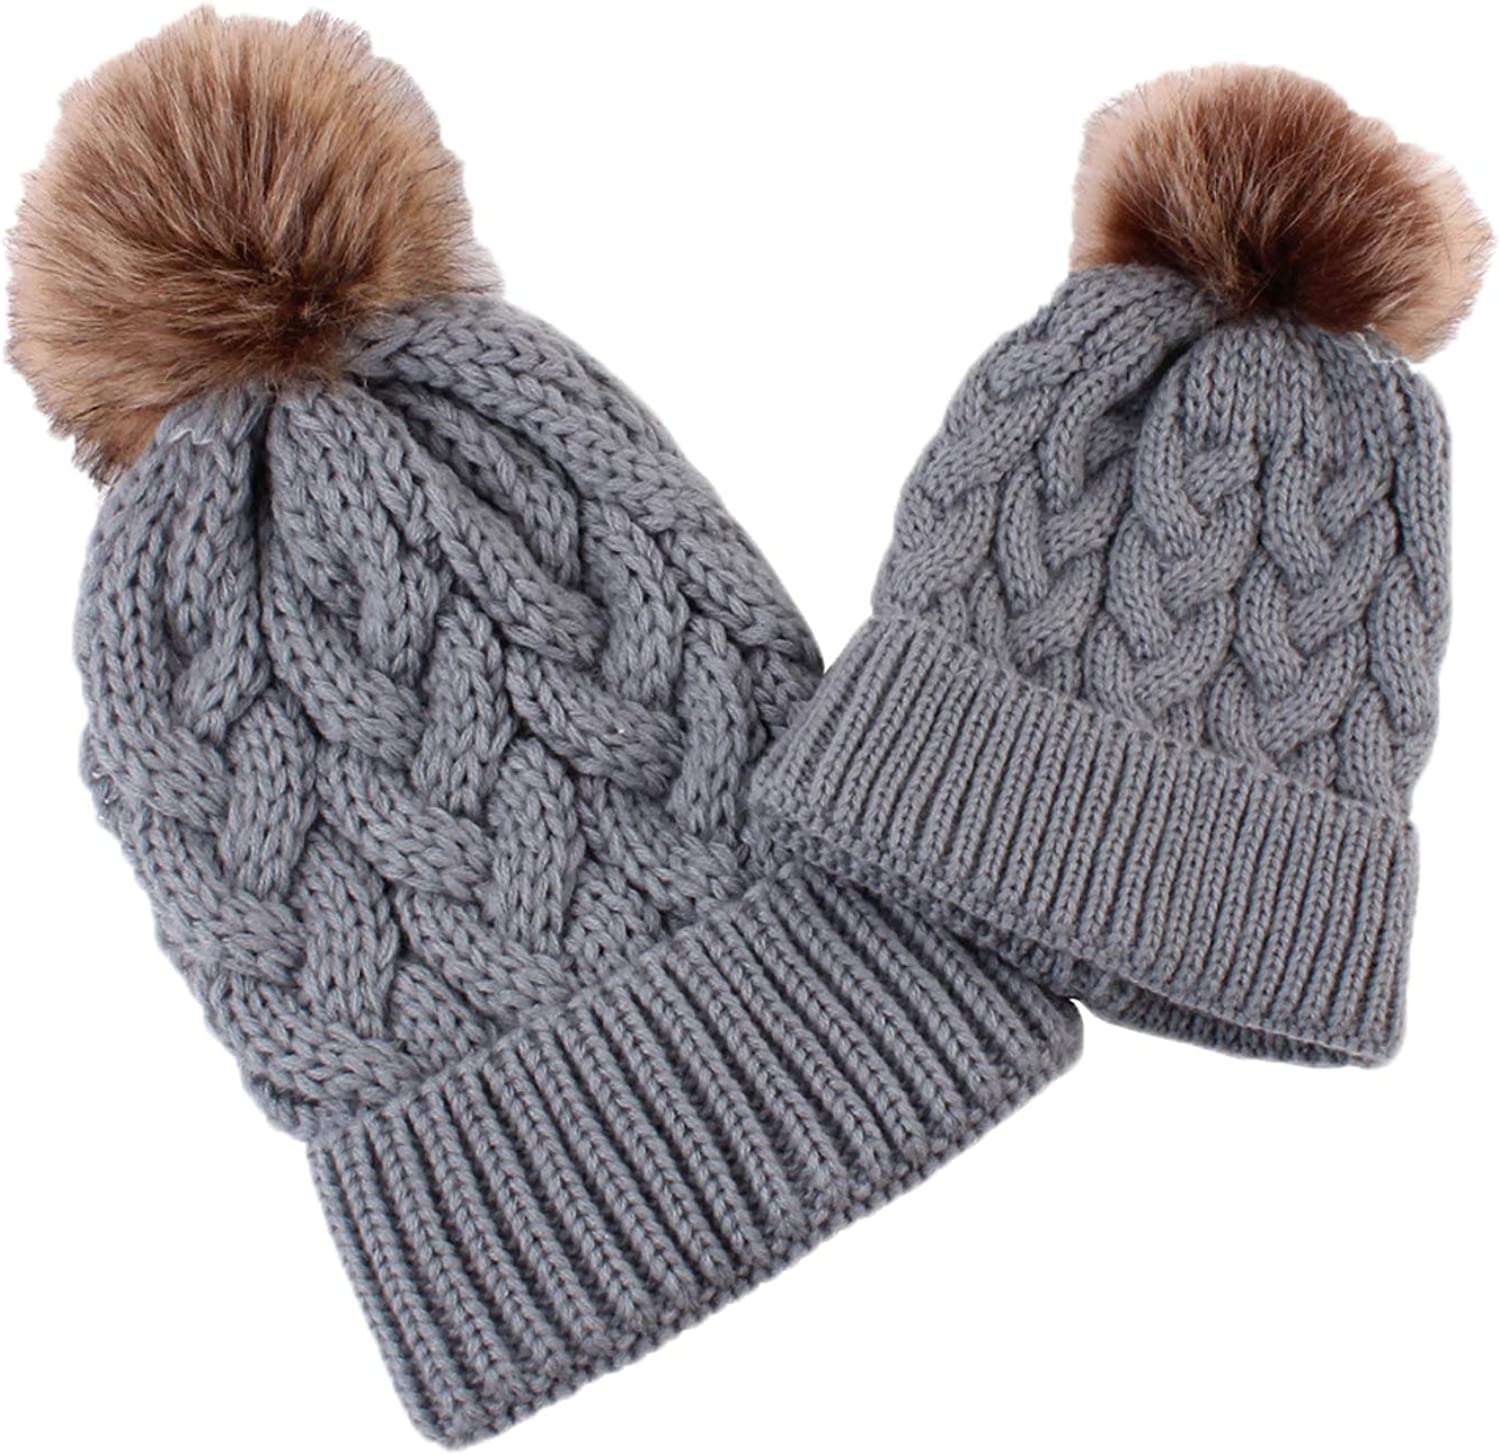 U2BUY Mother and Baby Toddler Knit Hat Winter Chicago Mall Warm ...